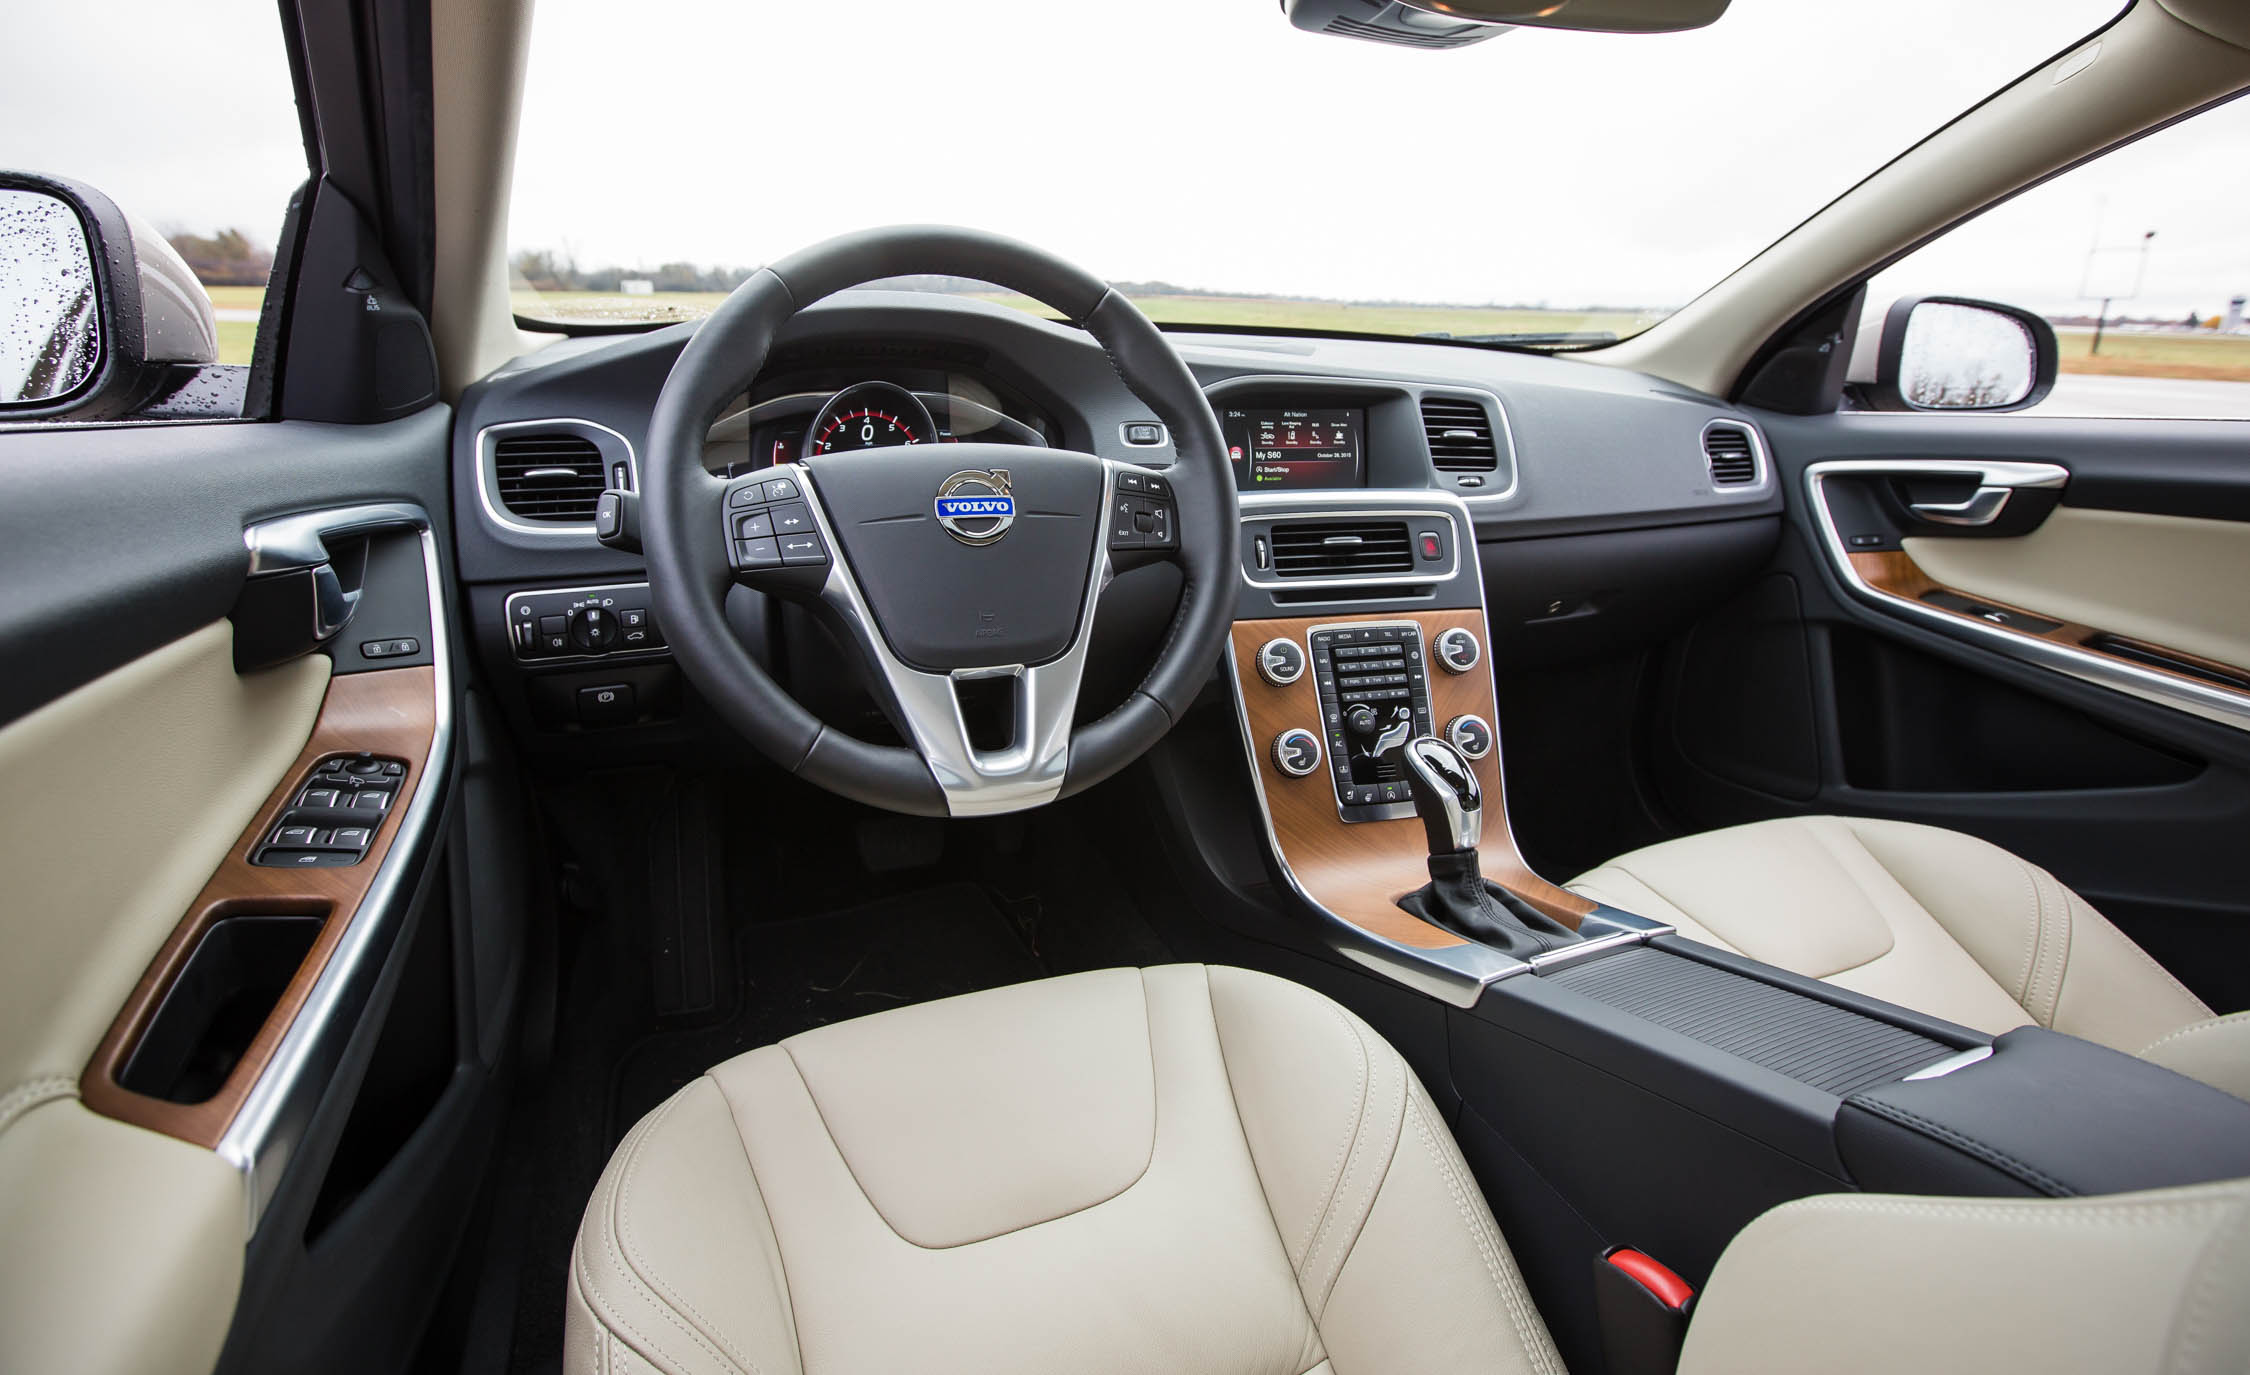 2016 volvo s60 inscription review 8922 cars performance reviews and test drive. Black Bedroom Furniture Sets. Home Design Ideas